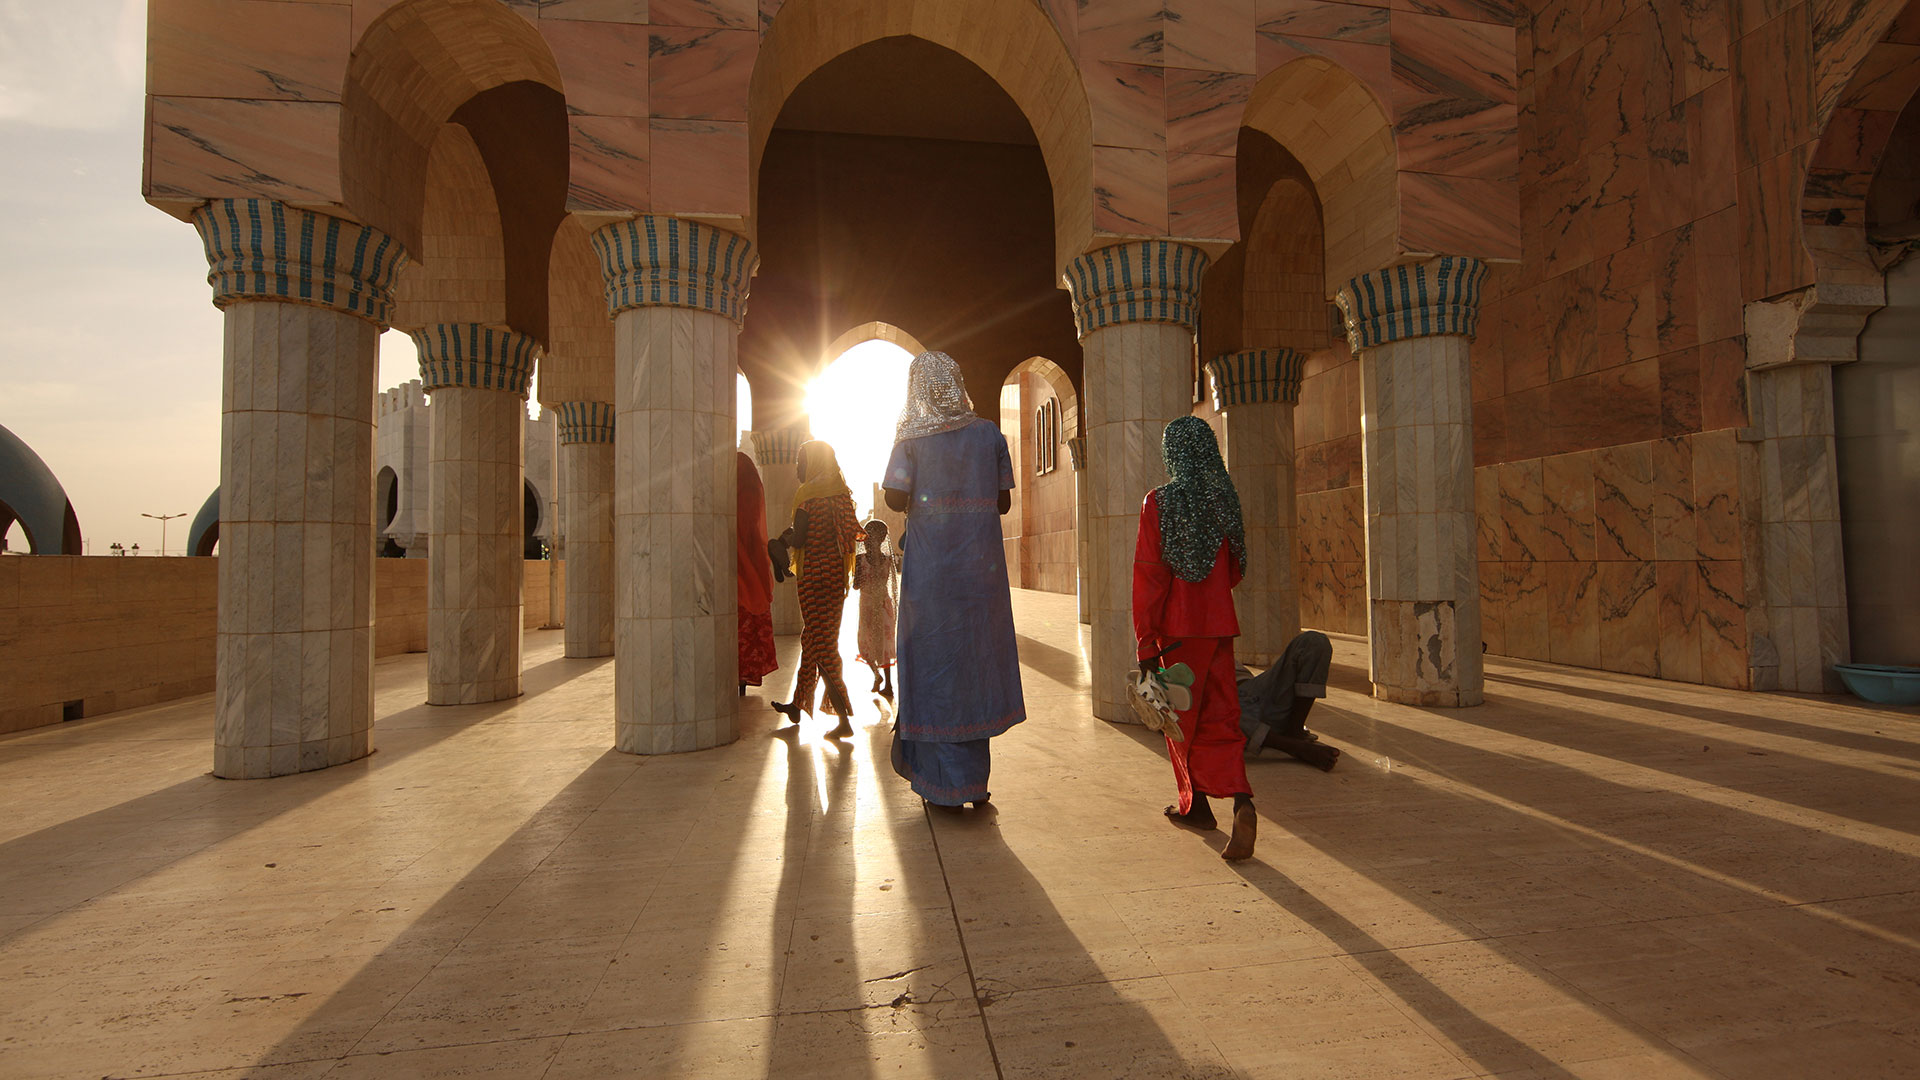 Scene in Touba (Photo courtesy of Amazon.com)